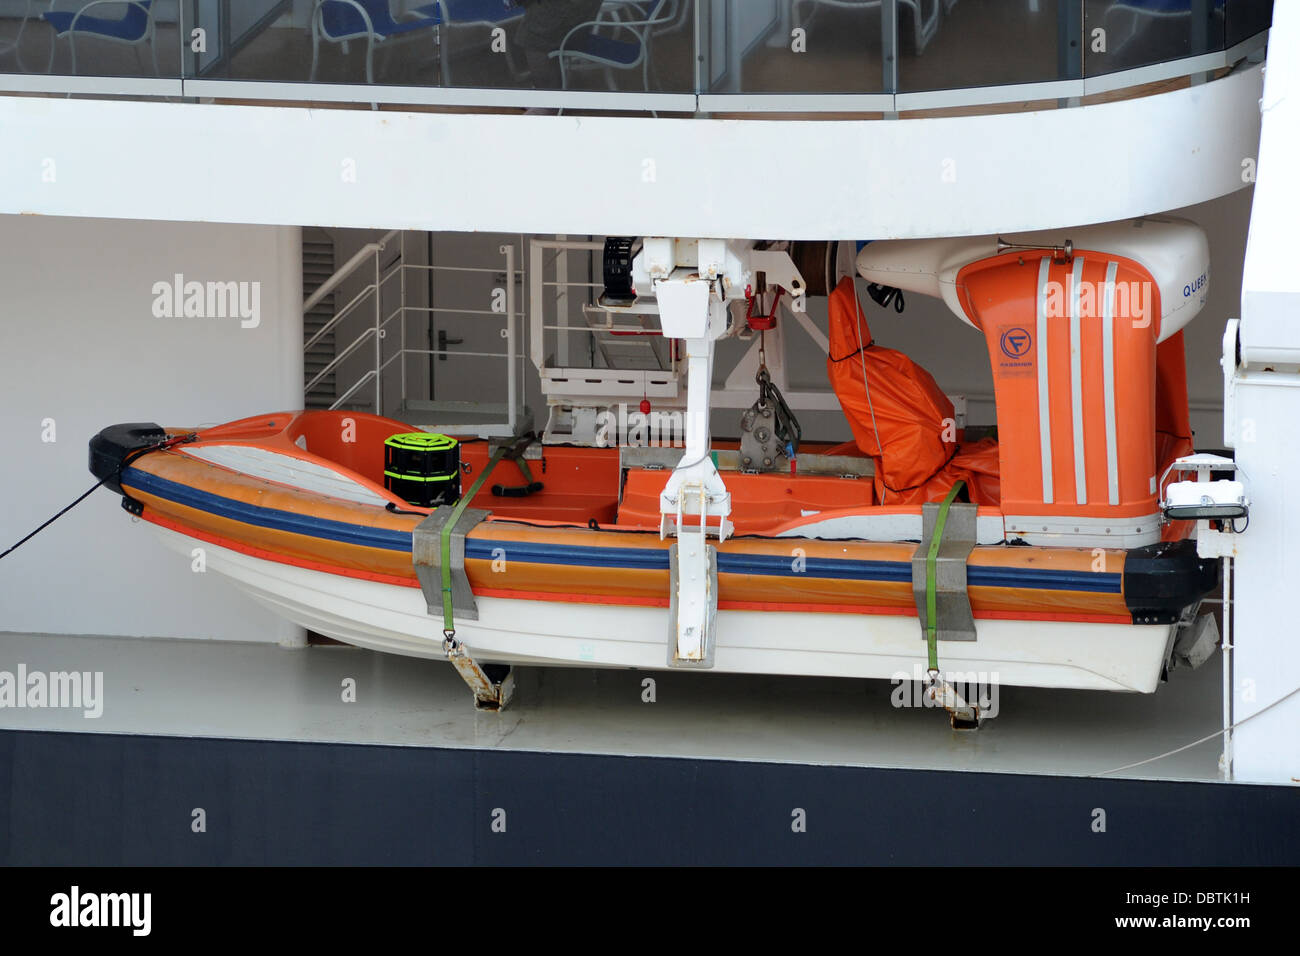 A lifeboat on the Queen Victoria cruise ship. - Stock Image